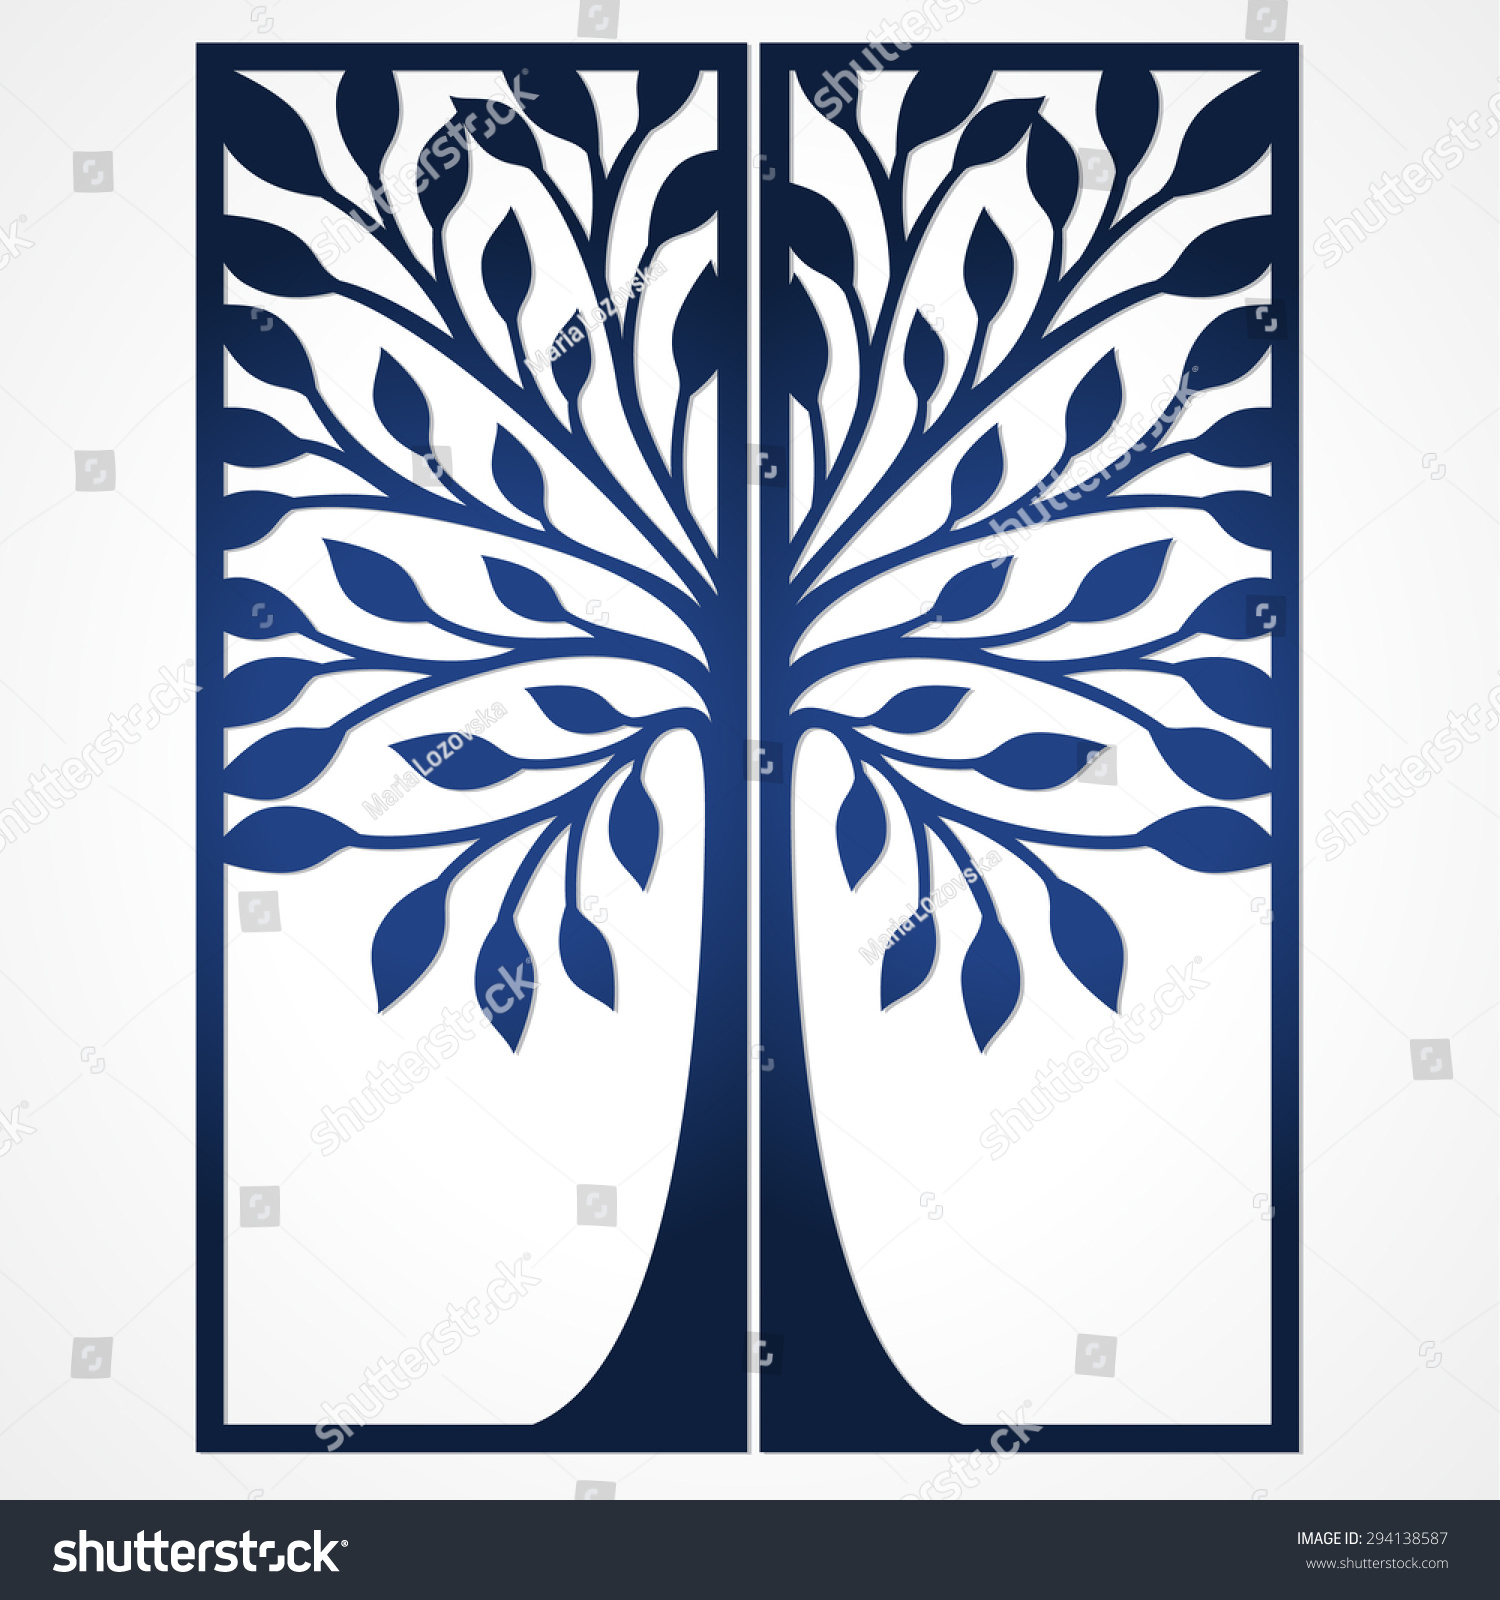 Royalty Free Abstract Frame With Tree Suitable For 294138587